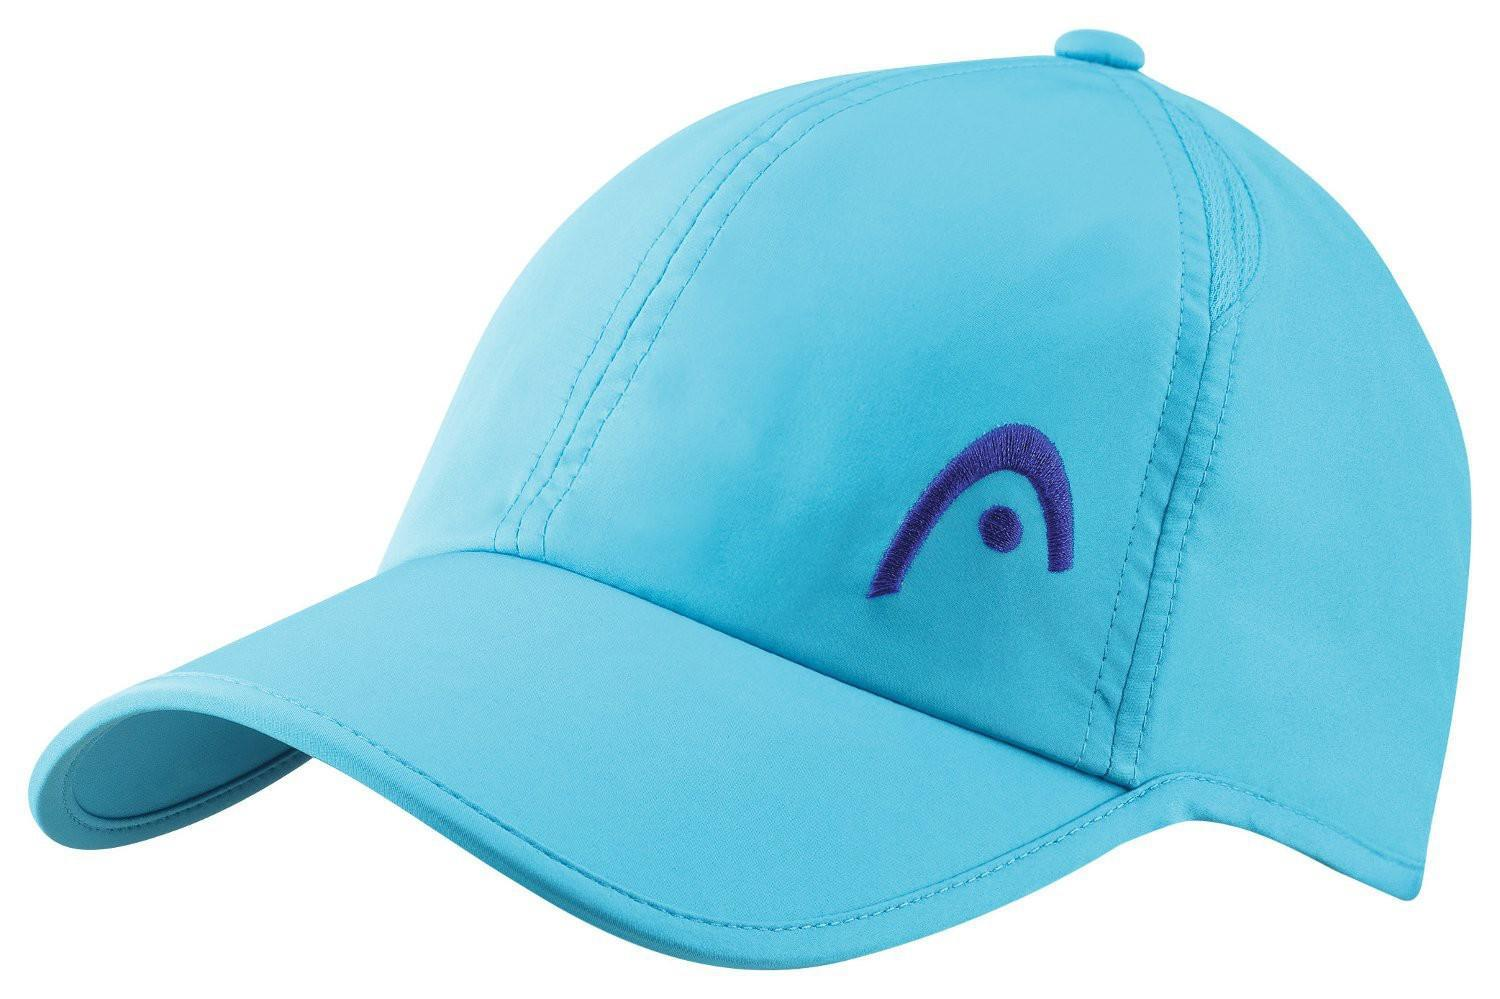 Теннисная кепка Head Pro Player Cap turquoise